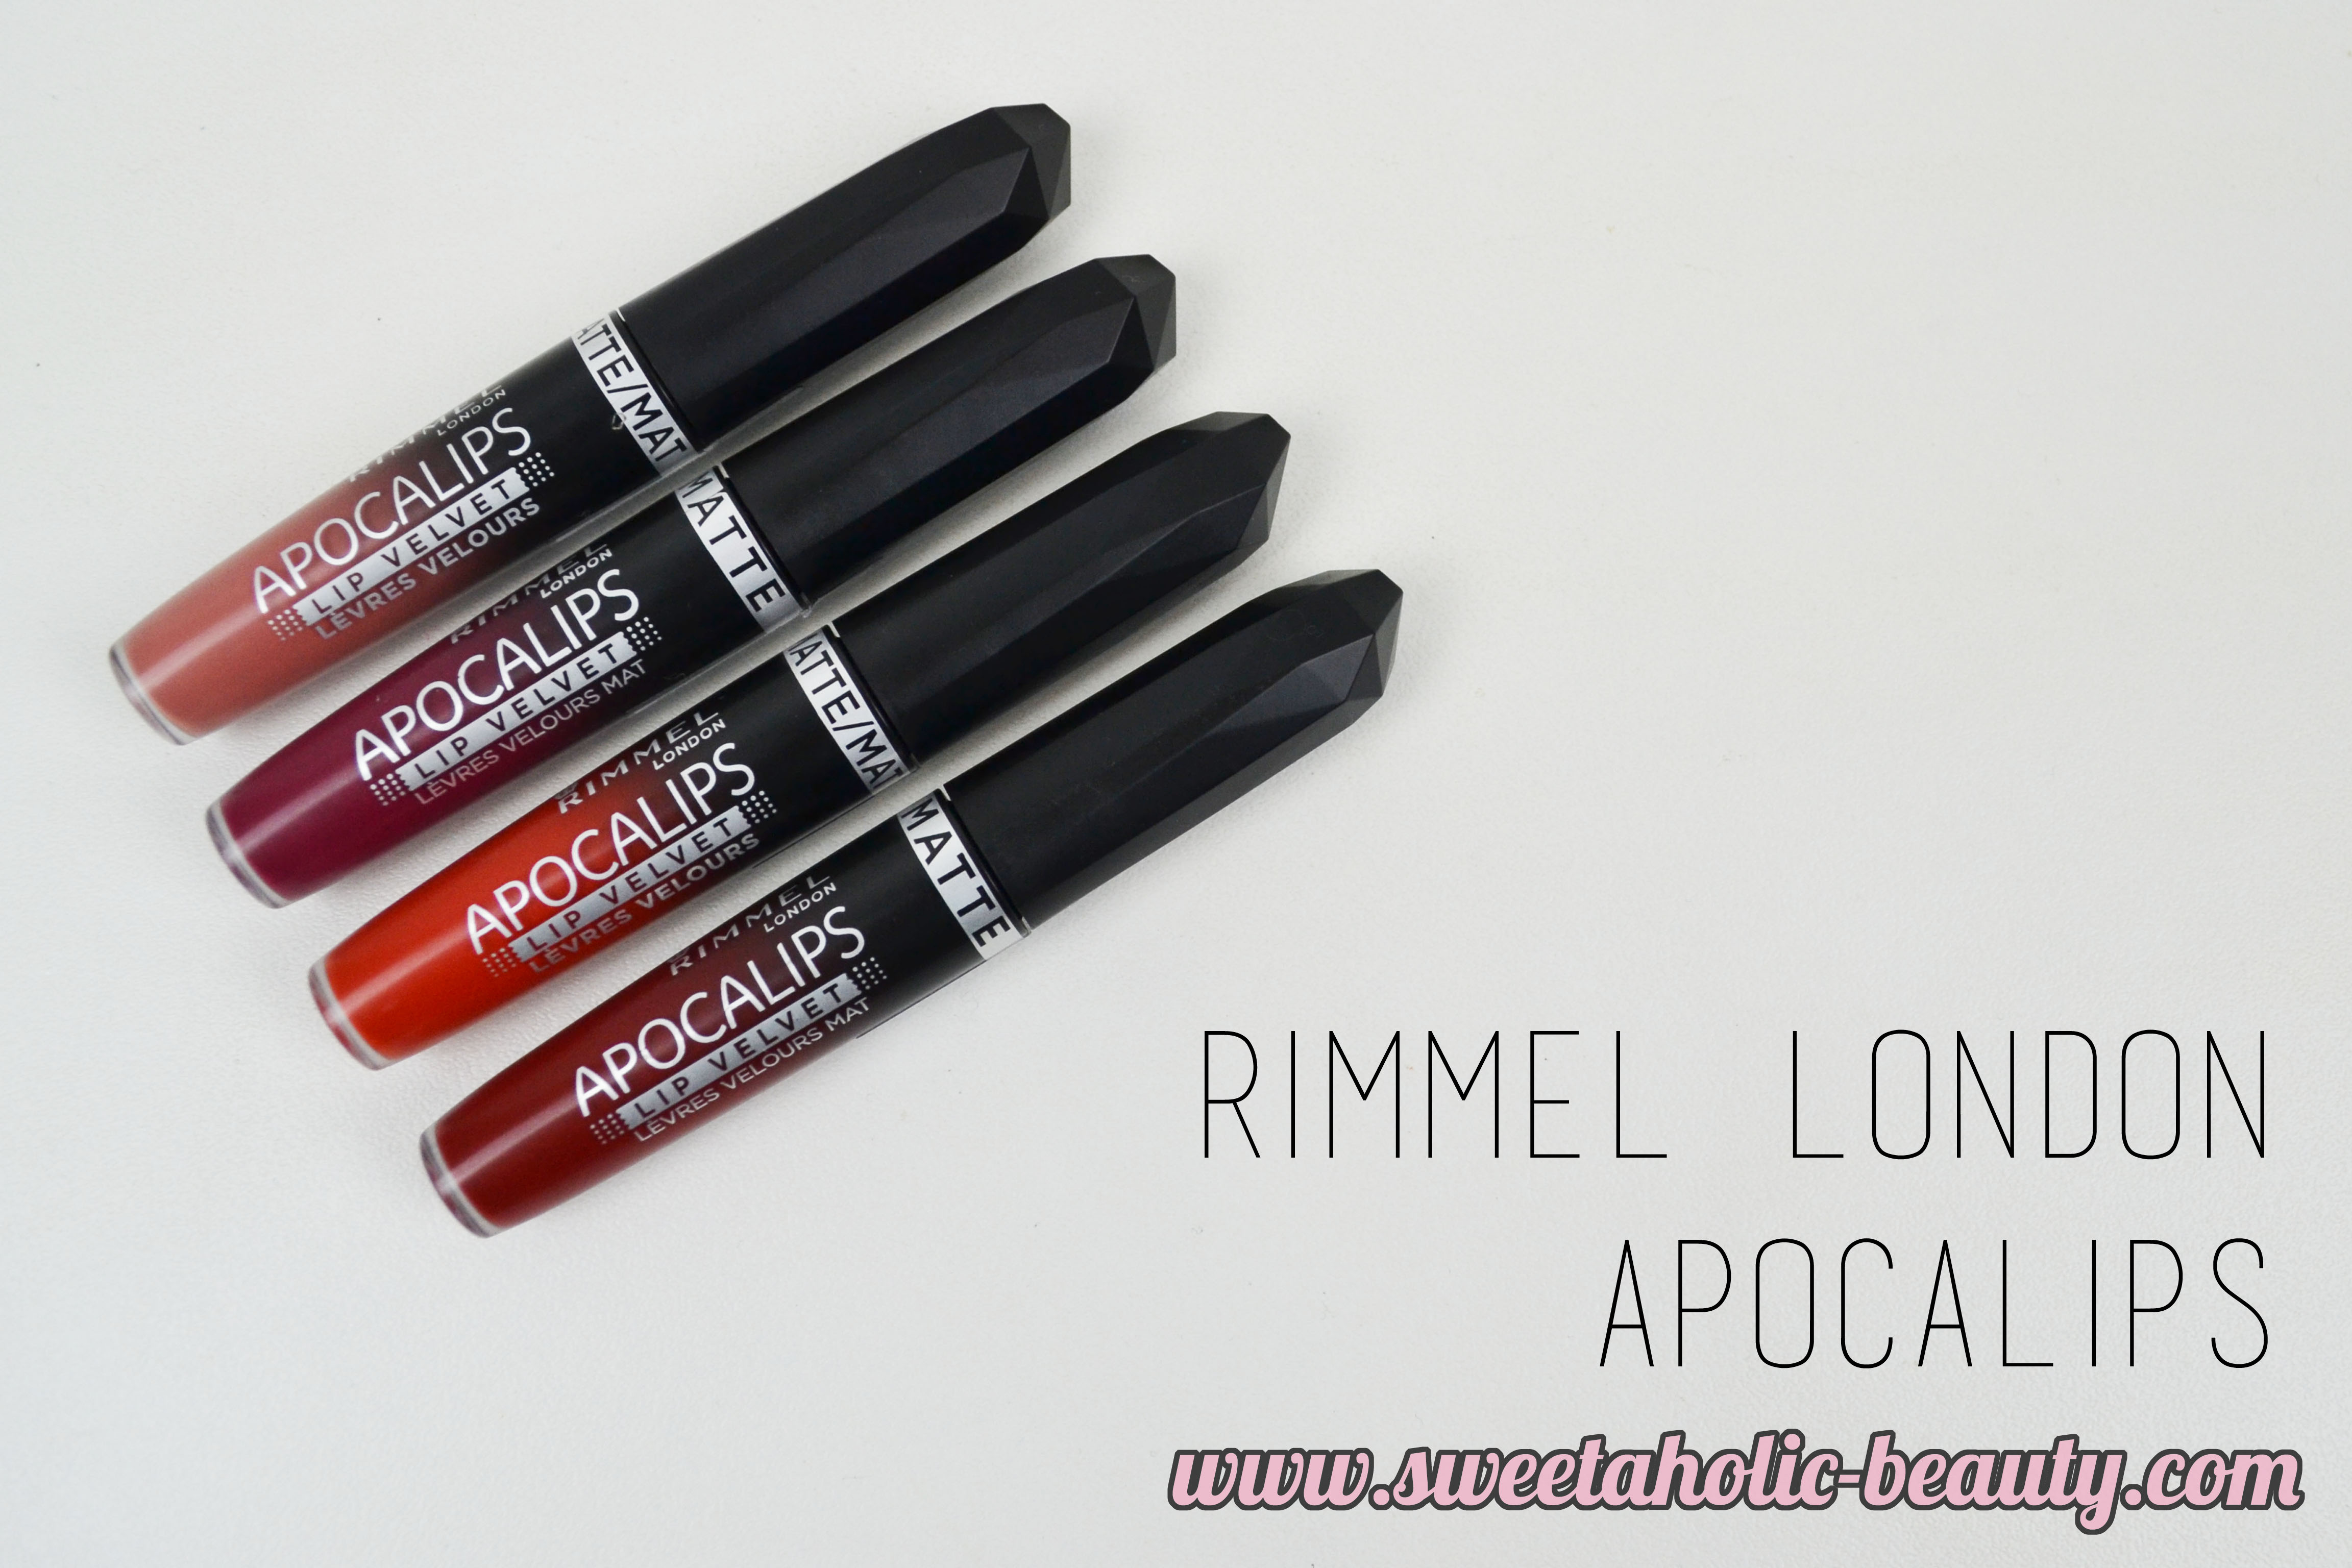 Rimmel London Apocalips Lip Velvet Matte Lips, Rimmel London, Apocalips,